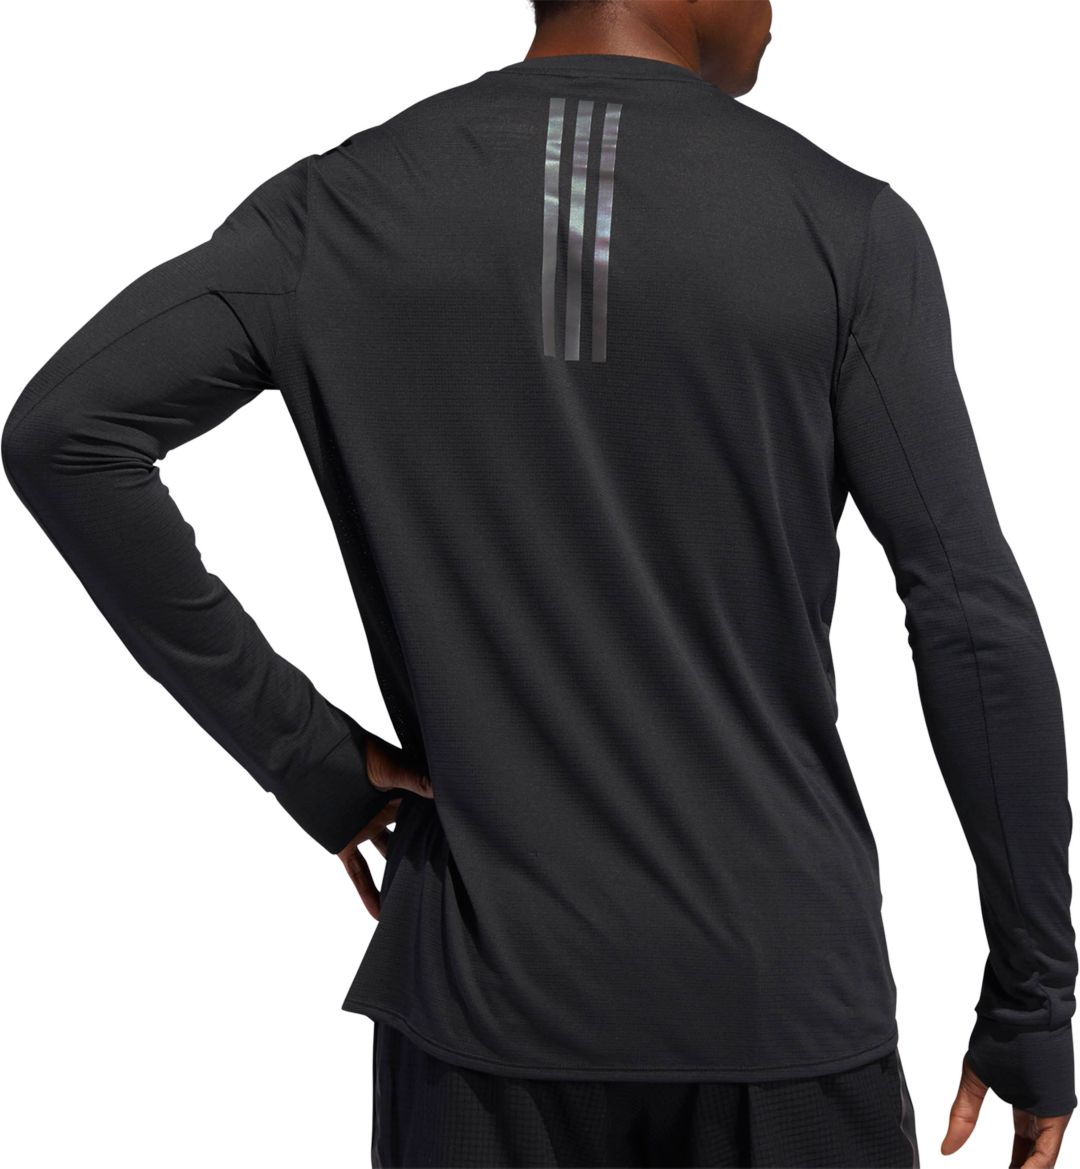 9e8ebac7 adidas Men's Supernova Running Long Sleeve Shirt